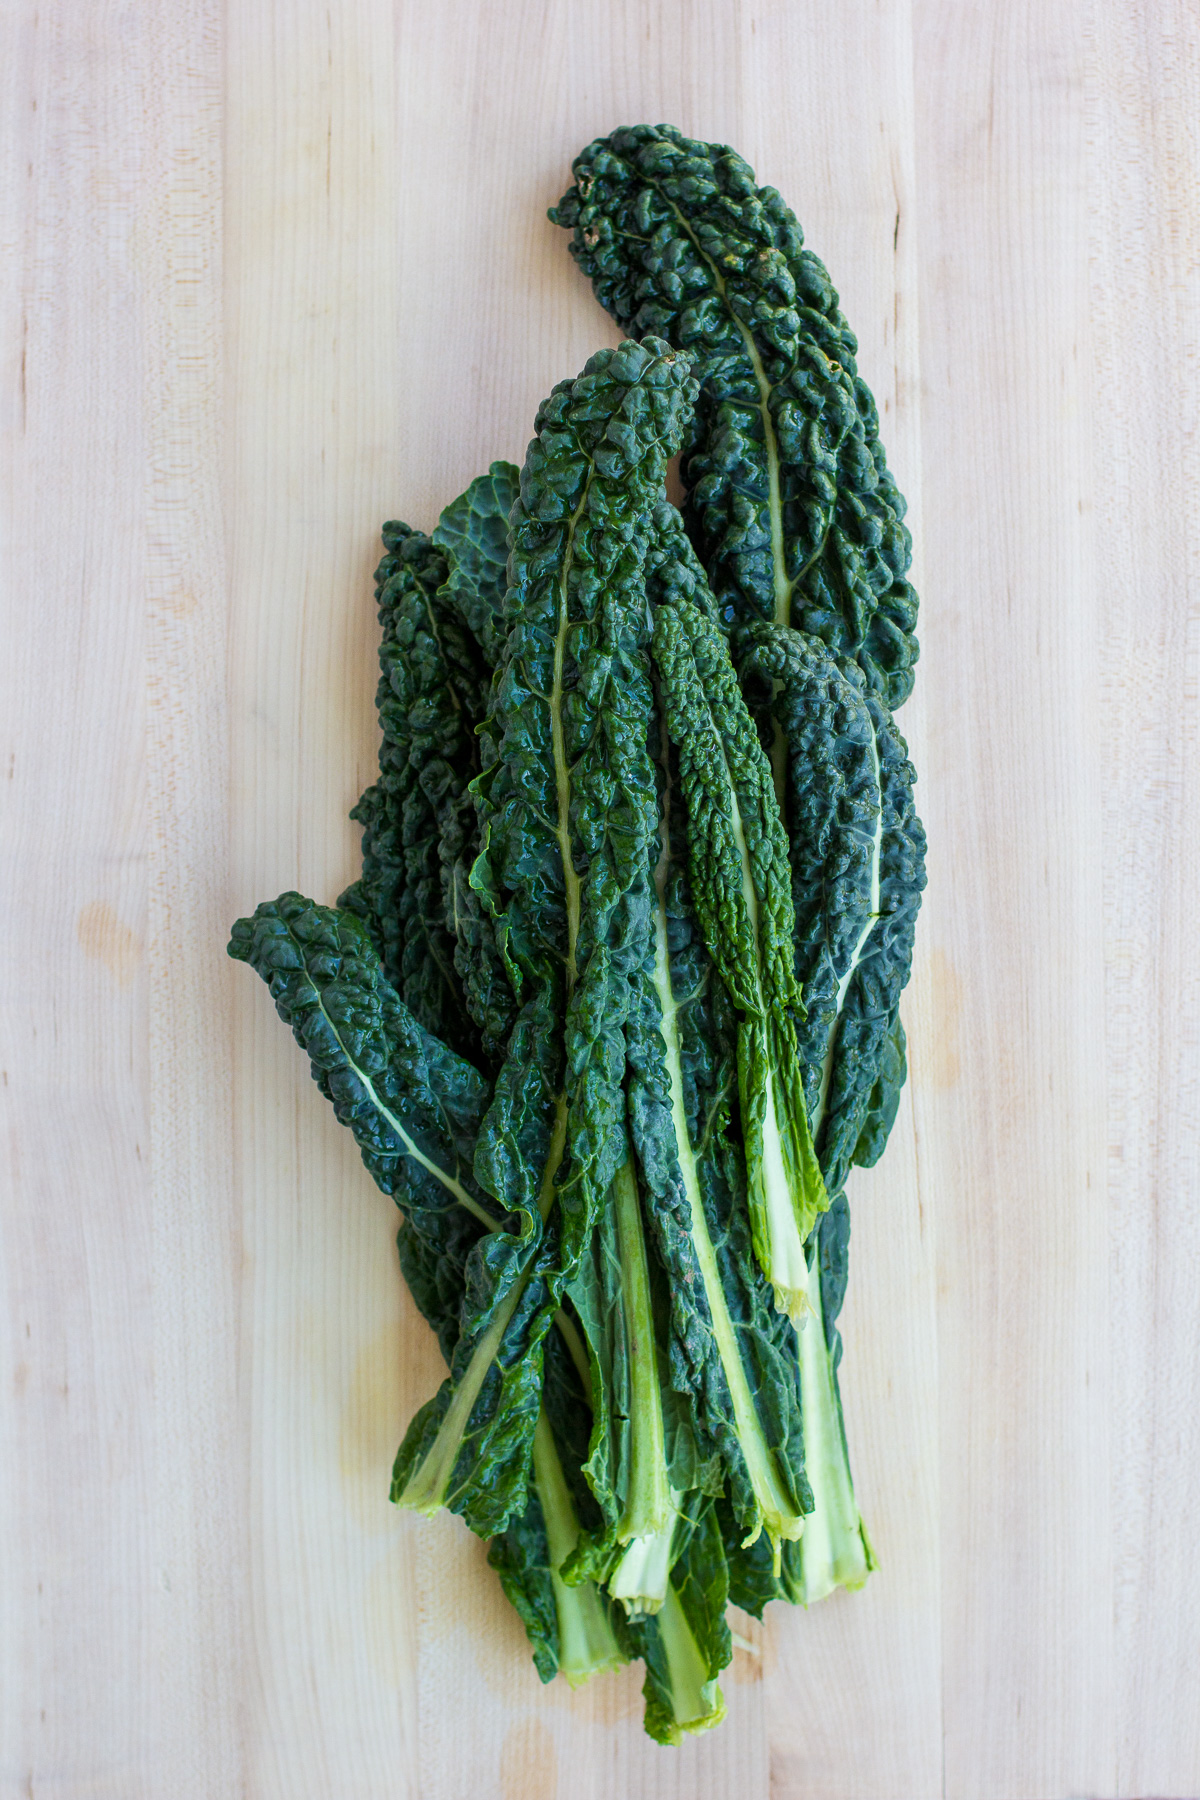 massaged kale, why you should massage kale, make kale less bitter, cooking tricks, wandeleur